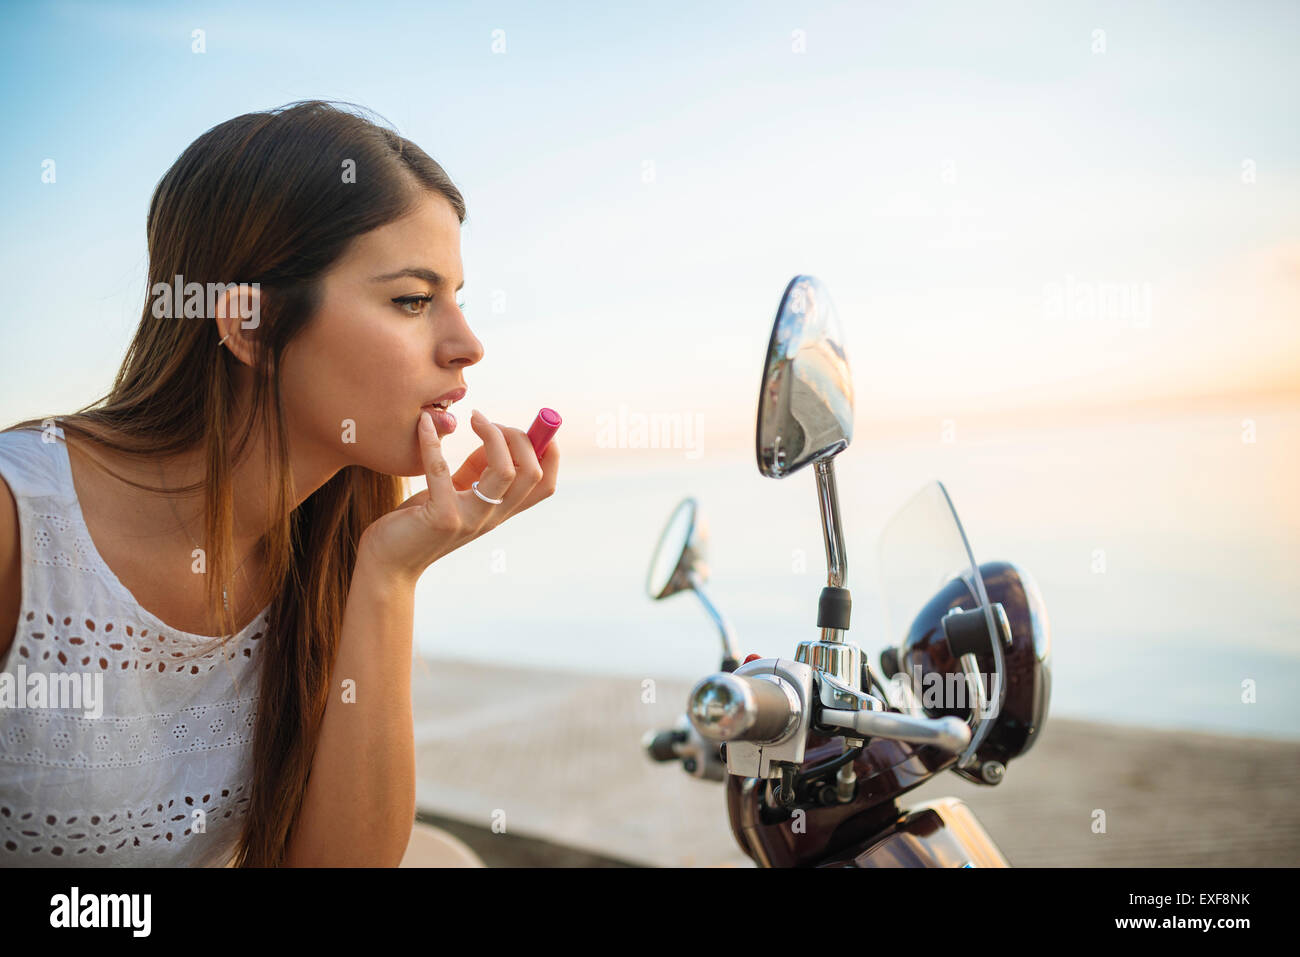 Young woman applying lipstick in motorcycle mirror, Manila, Philippines - Stock Image